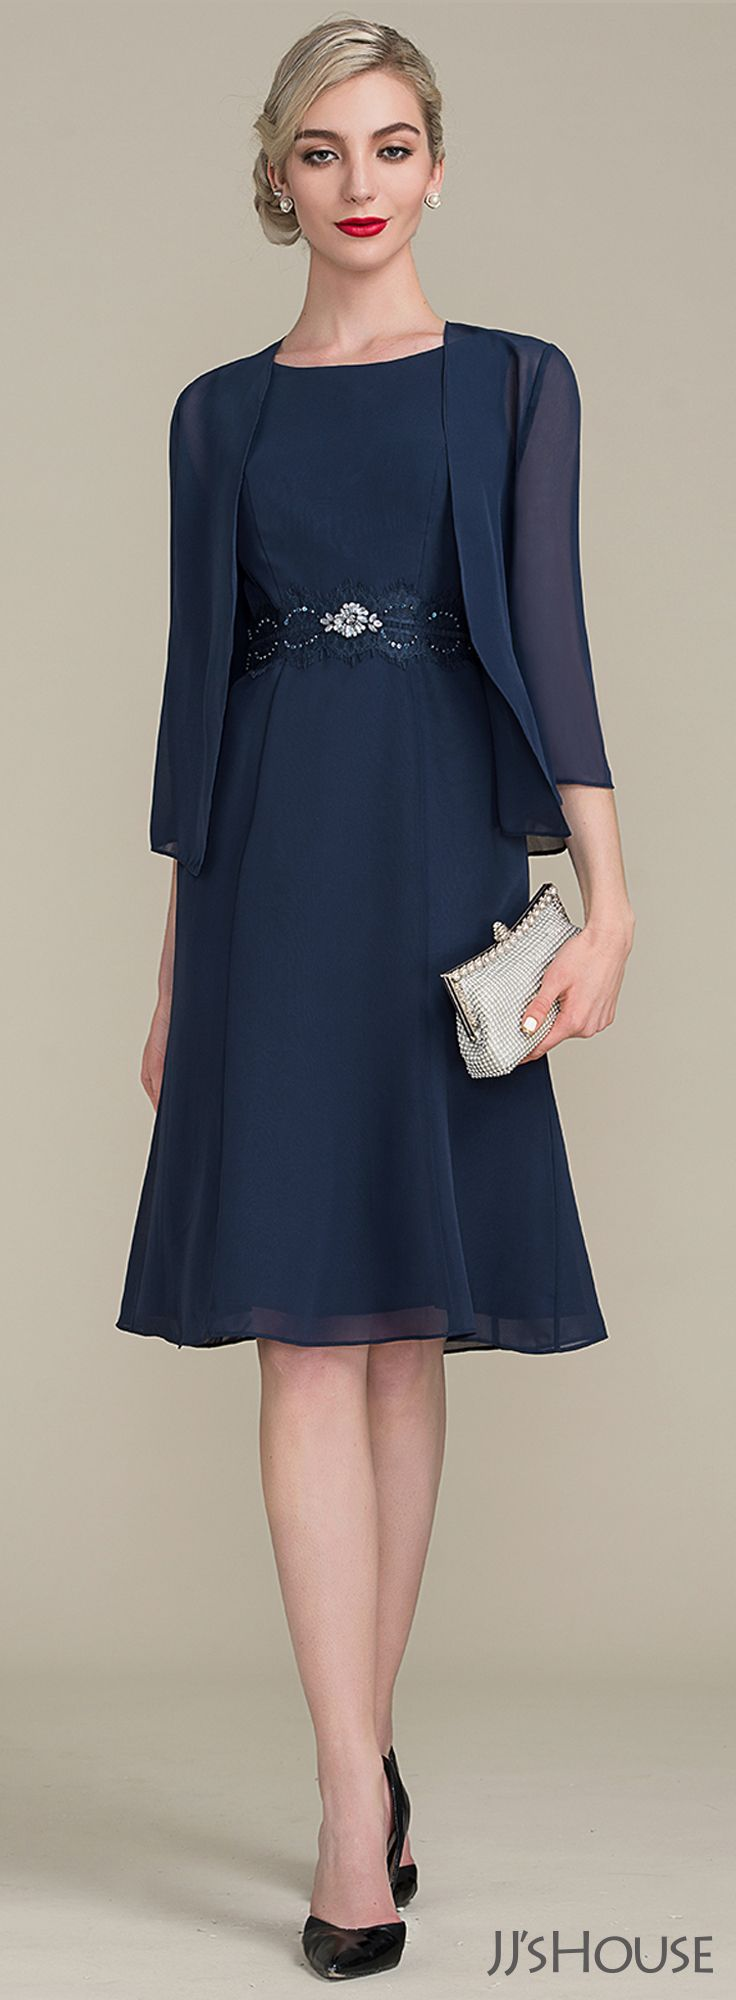 Mother of the Bride Dress Short Lace Embellished with Jacket at  SimplyDresses.com | Wedding | Pinterest | Bride dresses, Shorts and Groom  dress